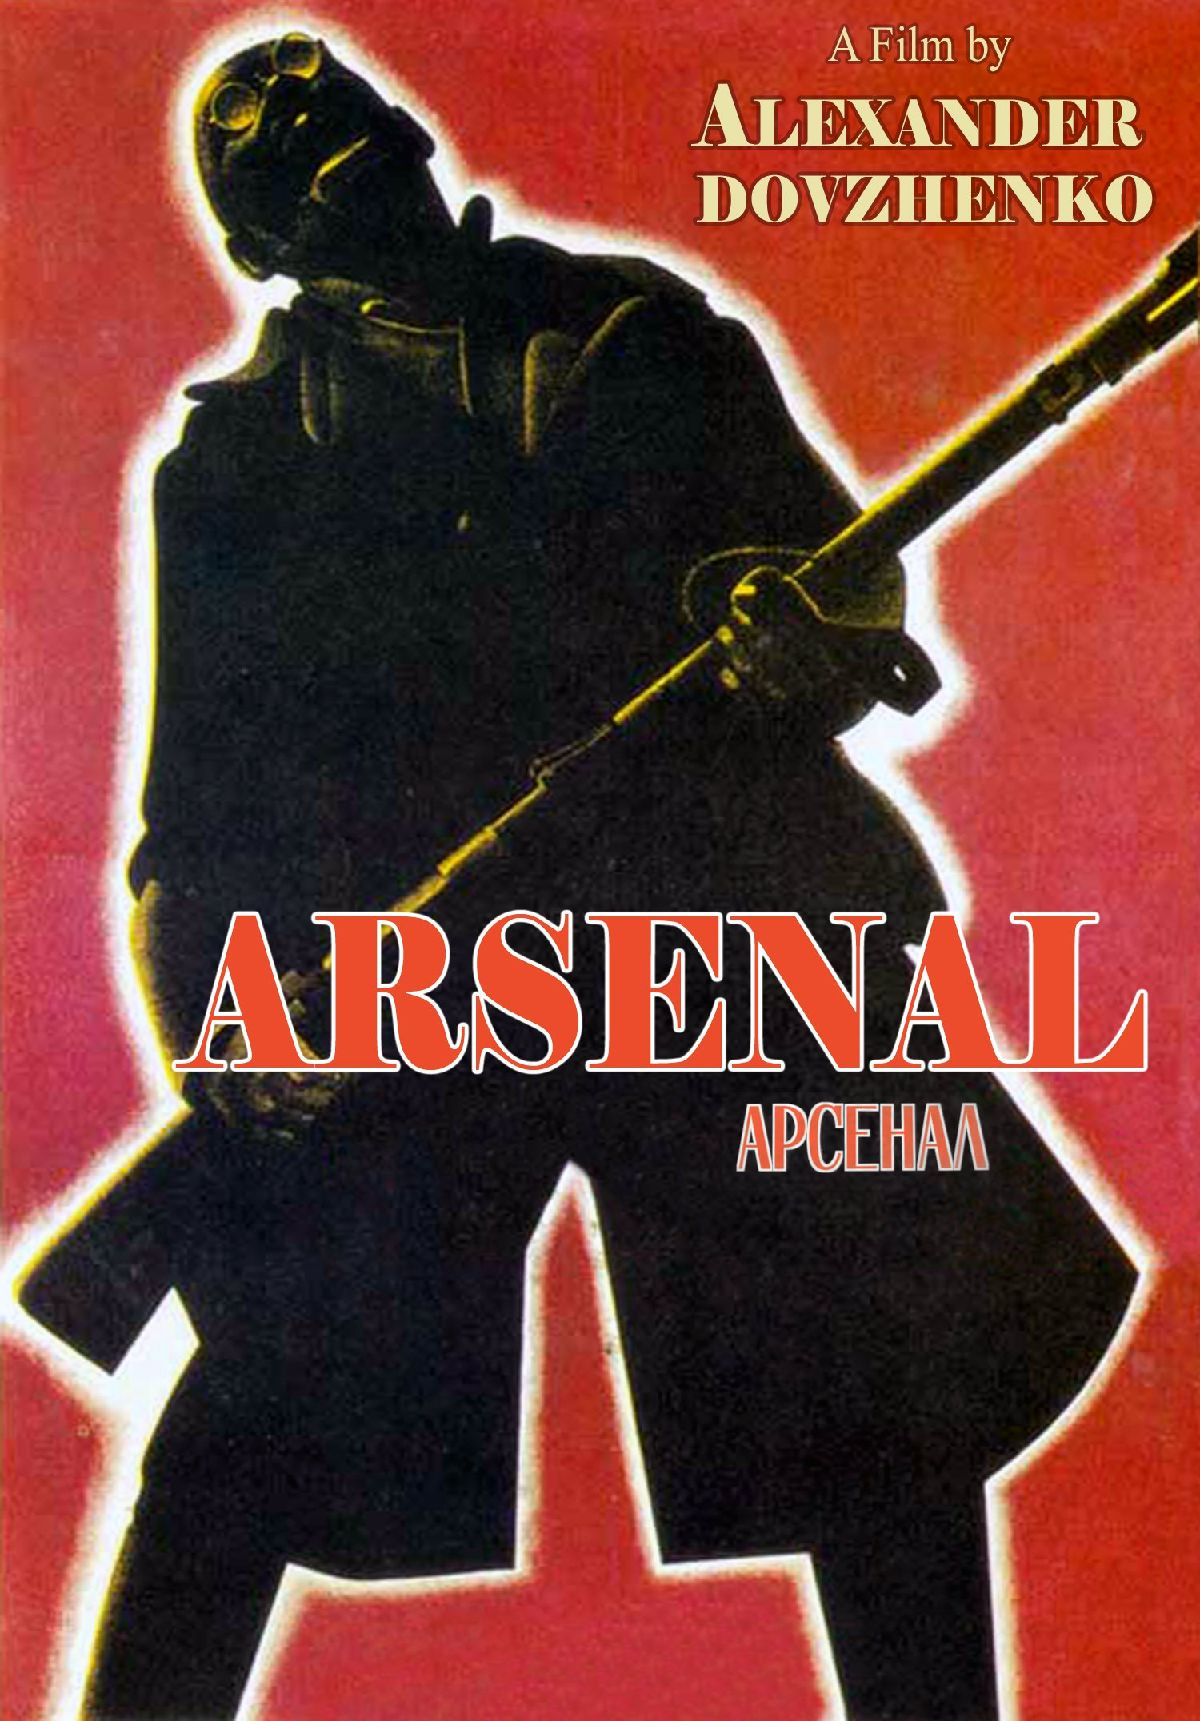 'Arsenal' movie poster